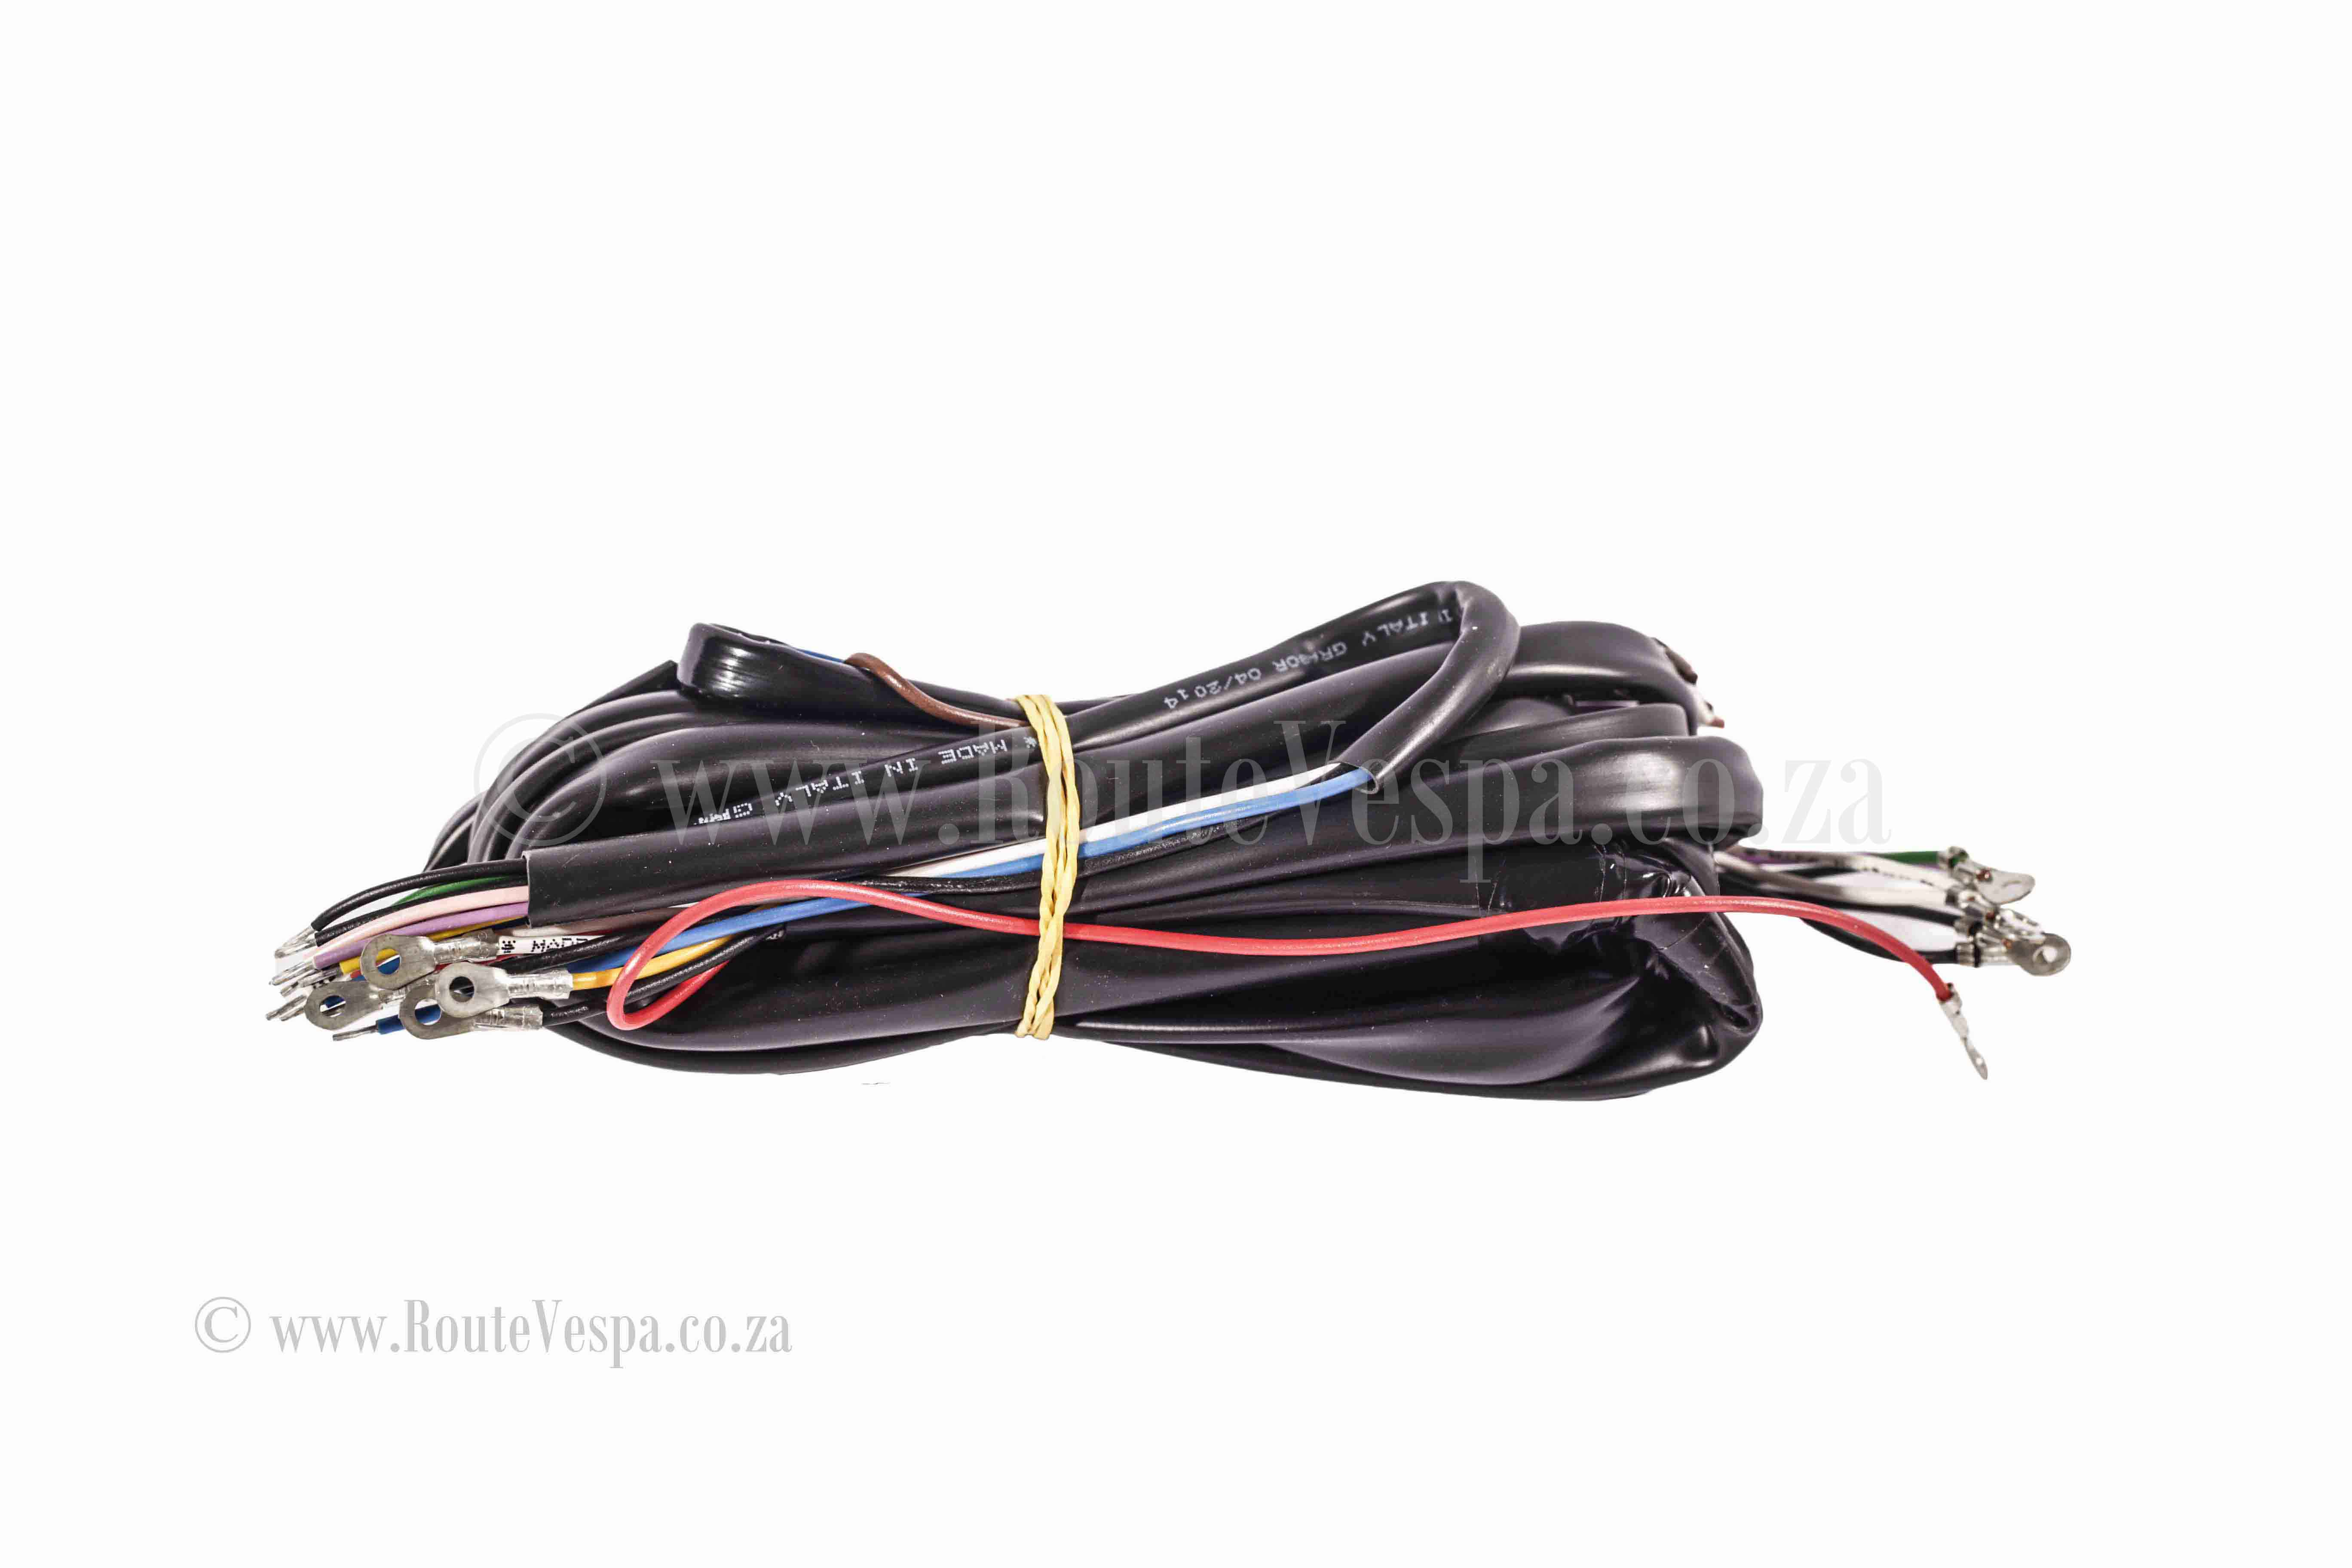 Wiring Harness 160 Gs Route Vespa System For Classic Electrical And Parts